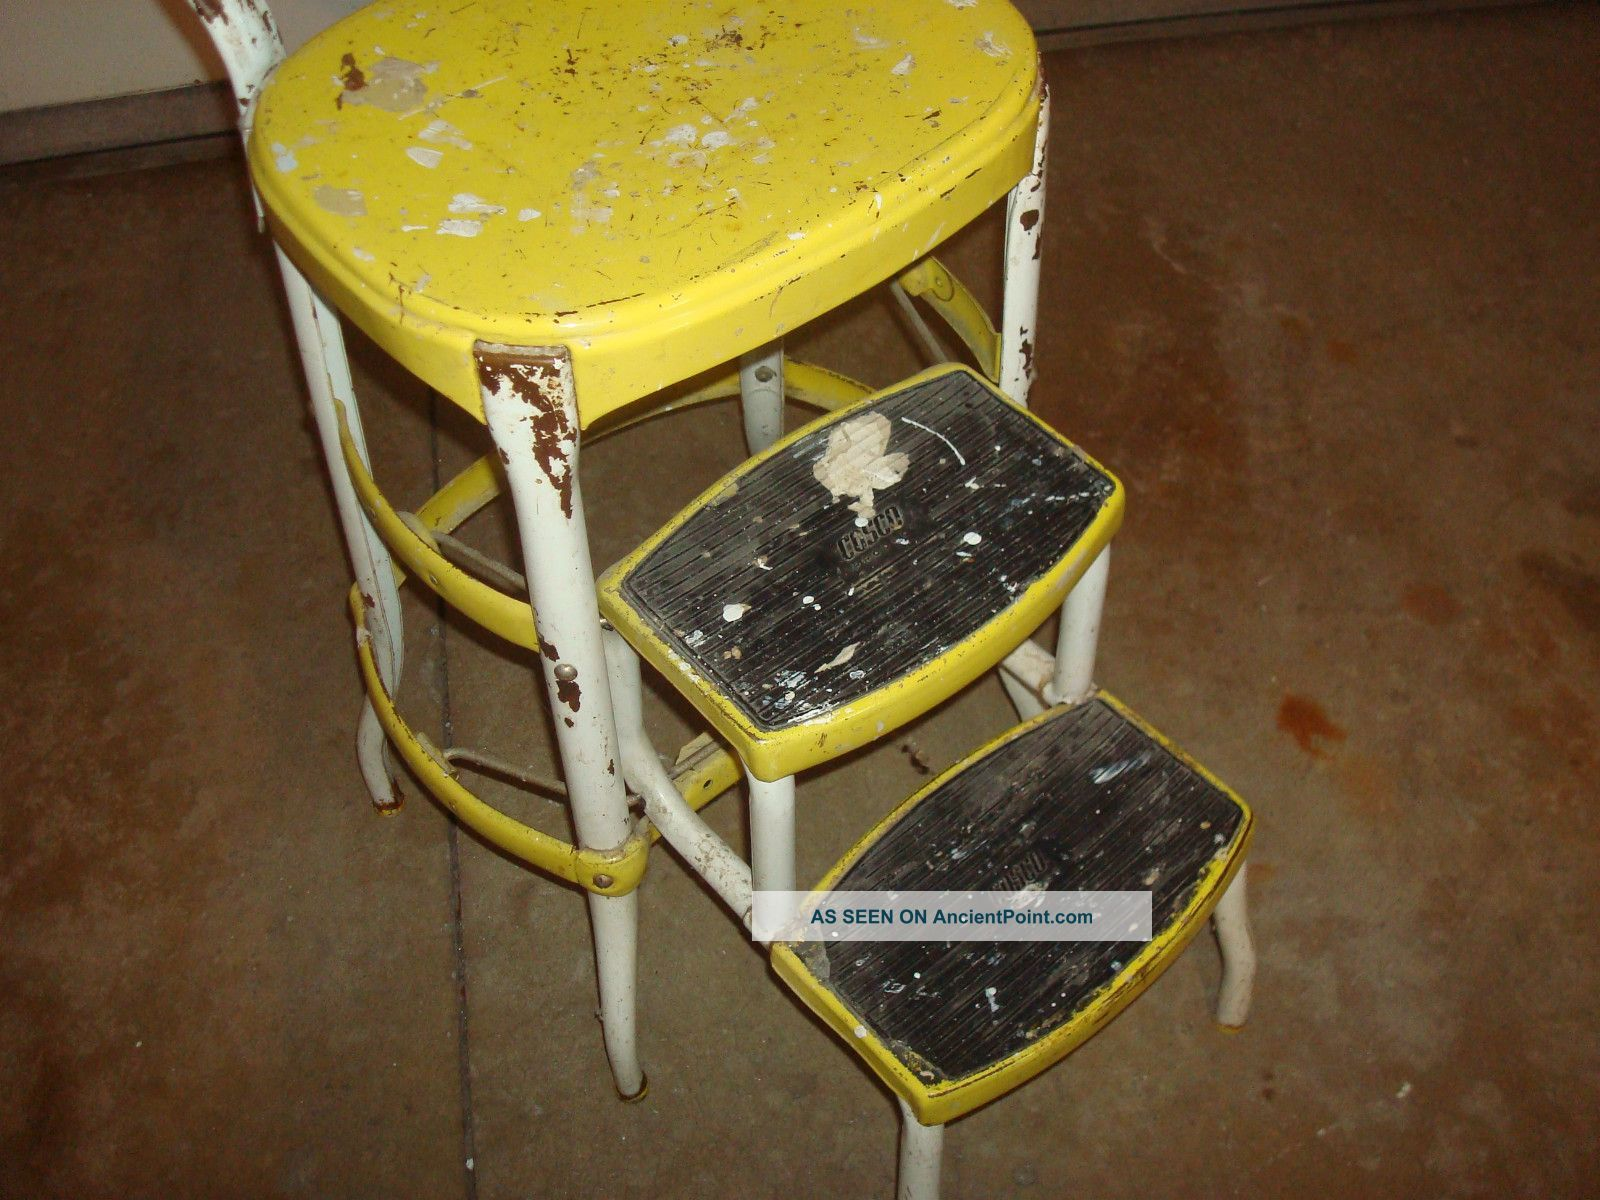 cosco step stools chairs | Vintage Retro Yellow Cosco Step Stool Mid - Century Kitchen Steel : retro counter chair step stool - islam-shia.org